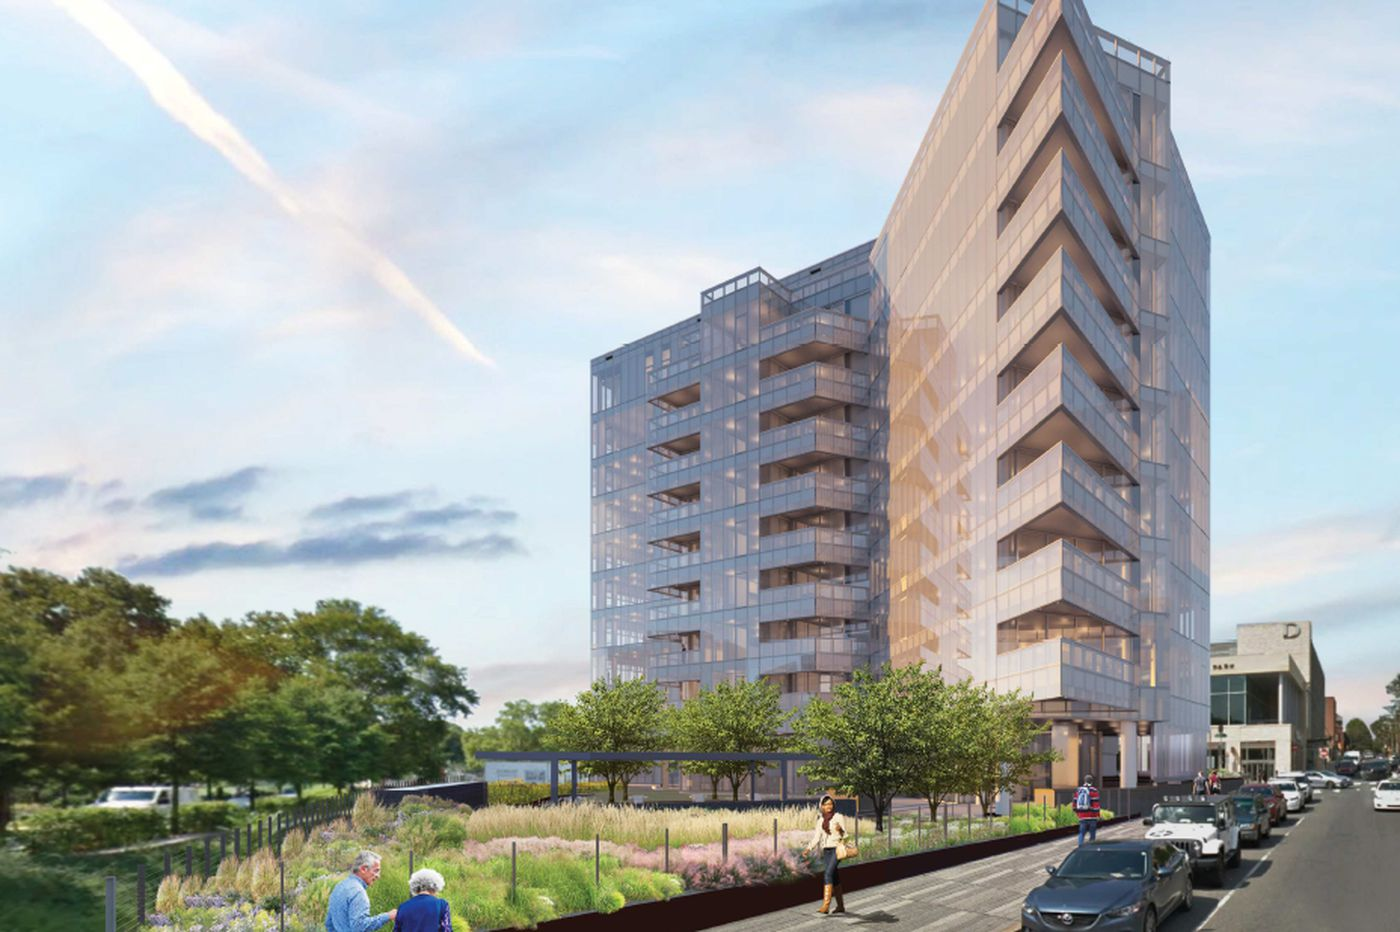 How one small condo building could harm the Parkway, Rodin Museum, and Philly's dream of a new rail park | Inga Saffron